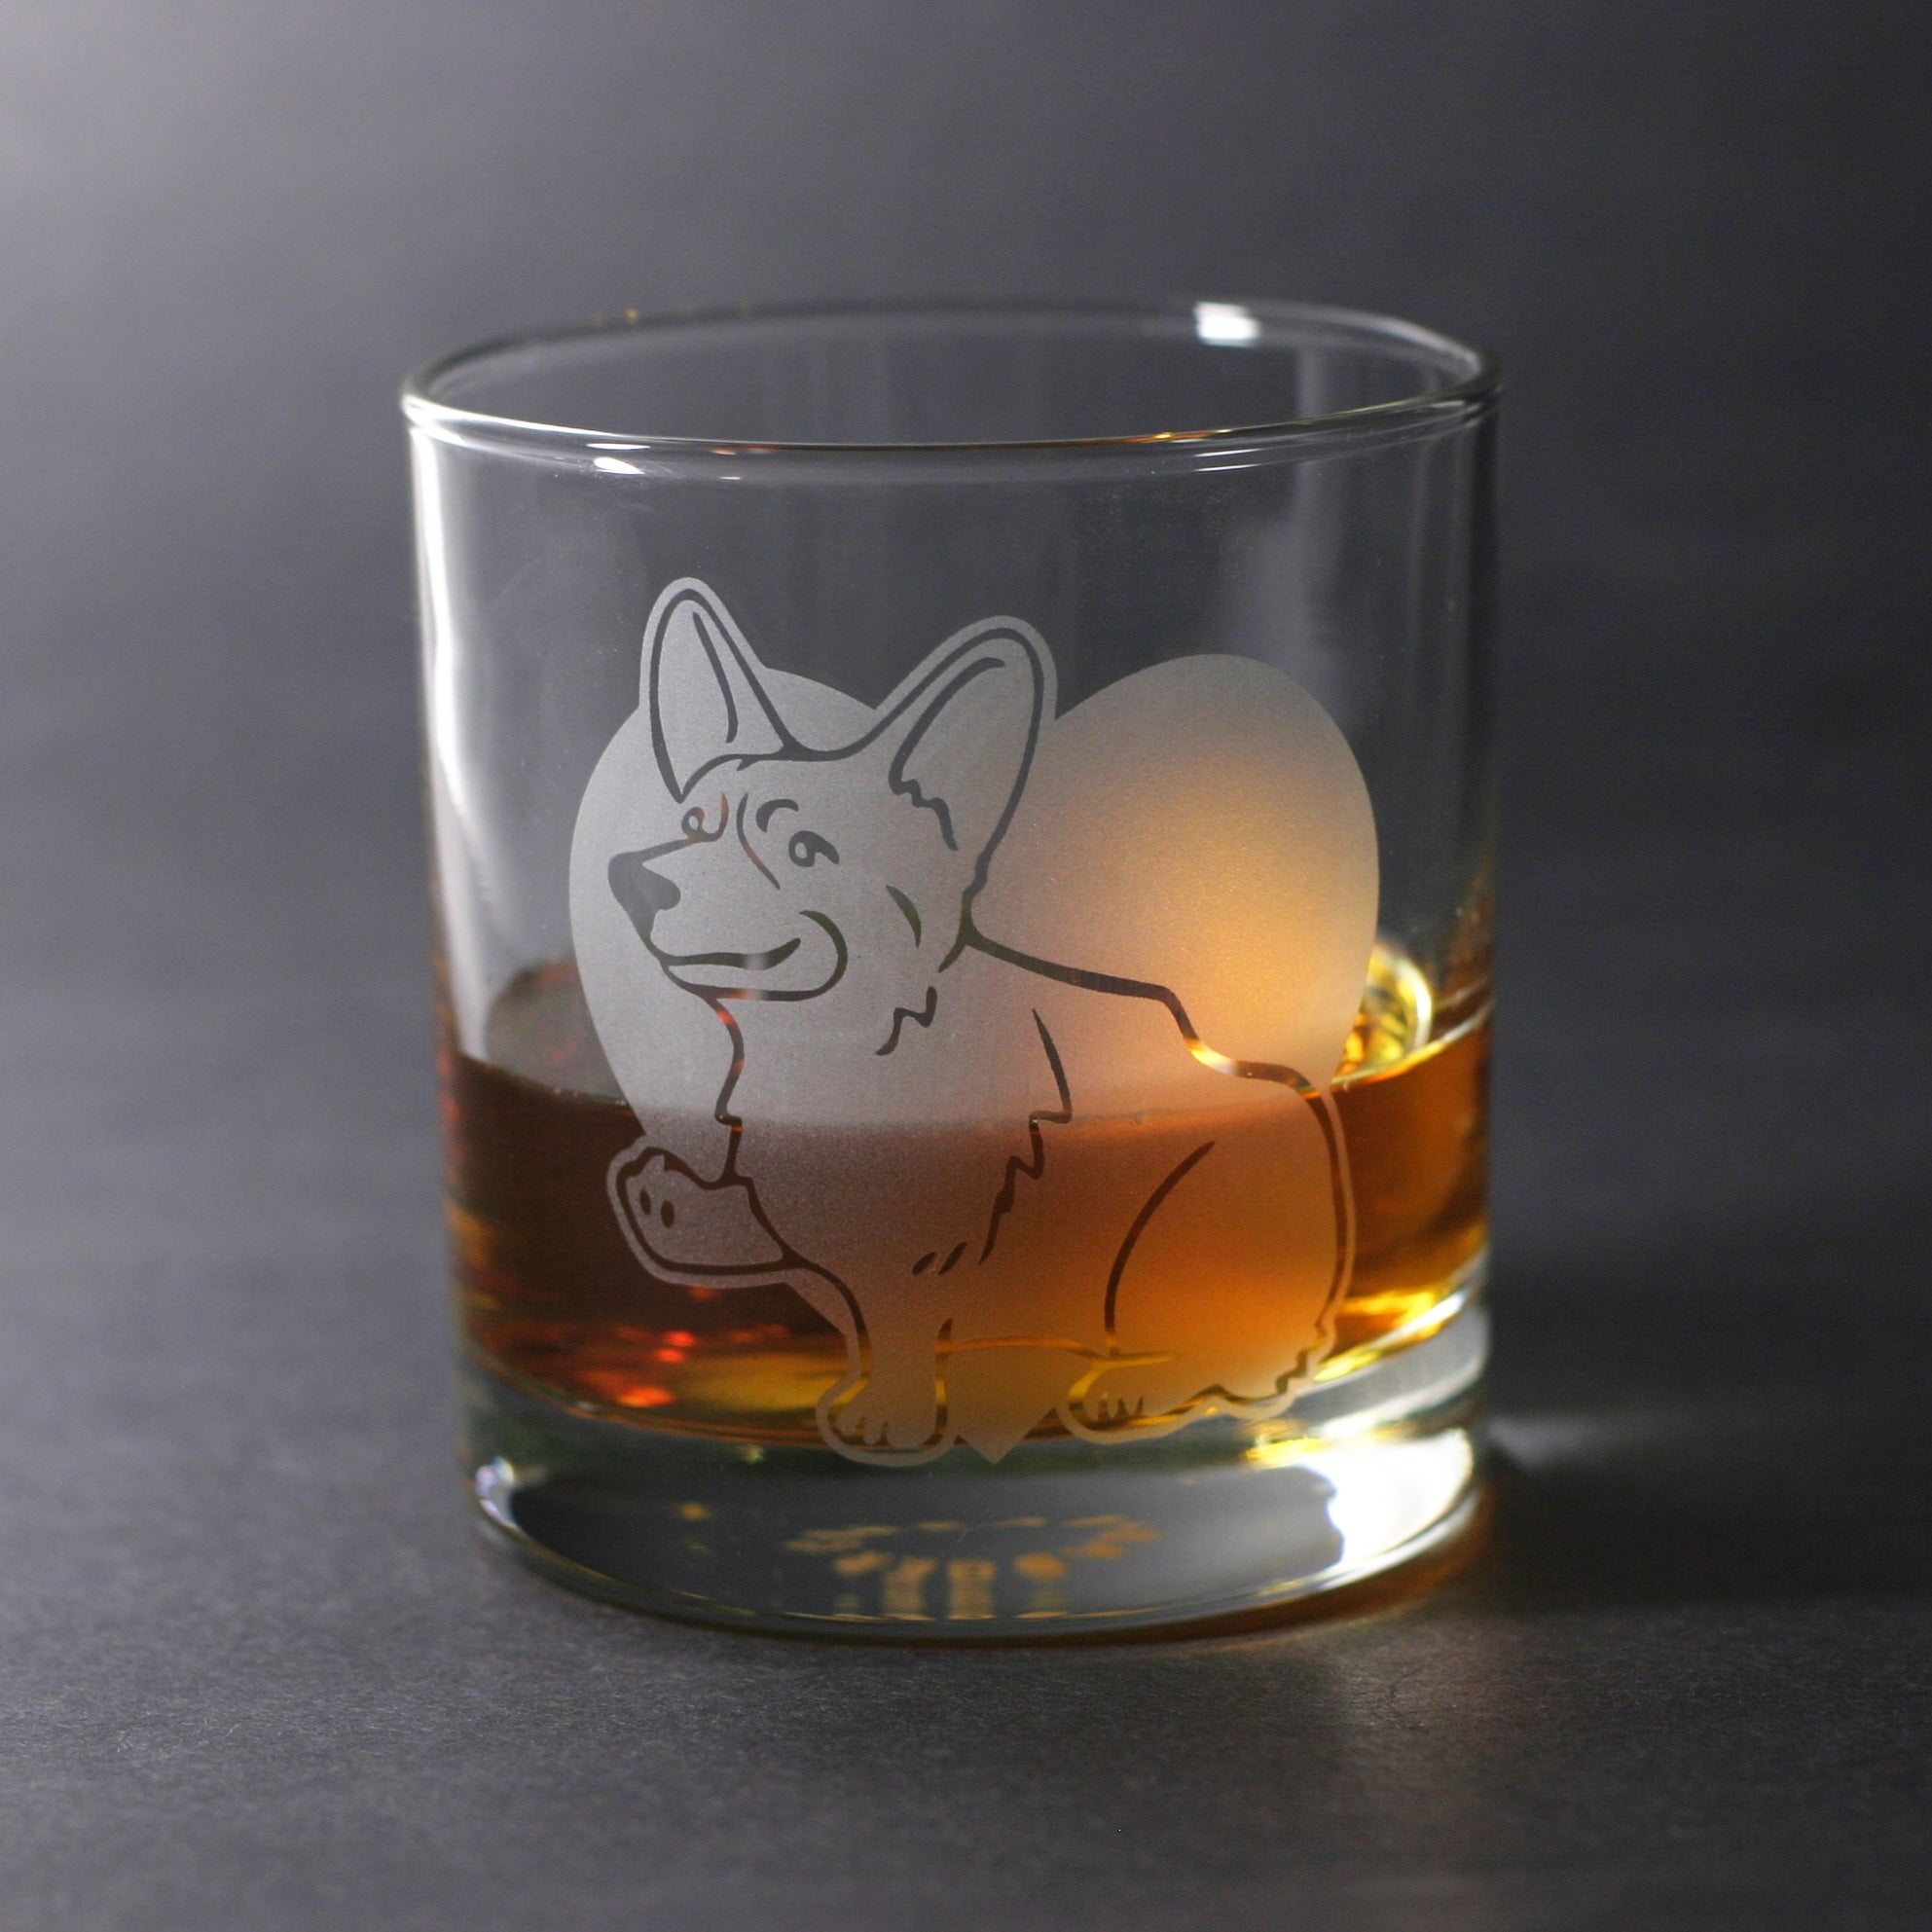 Corgi dog lowball glass by Bread and Badger